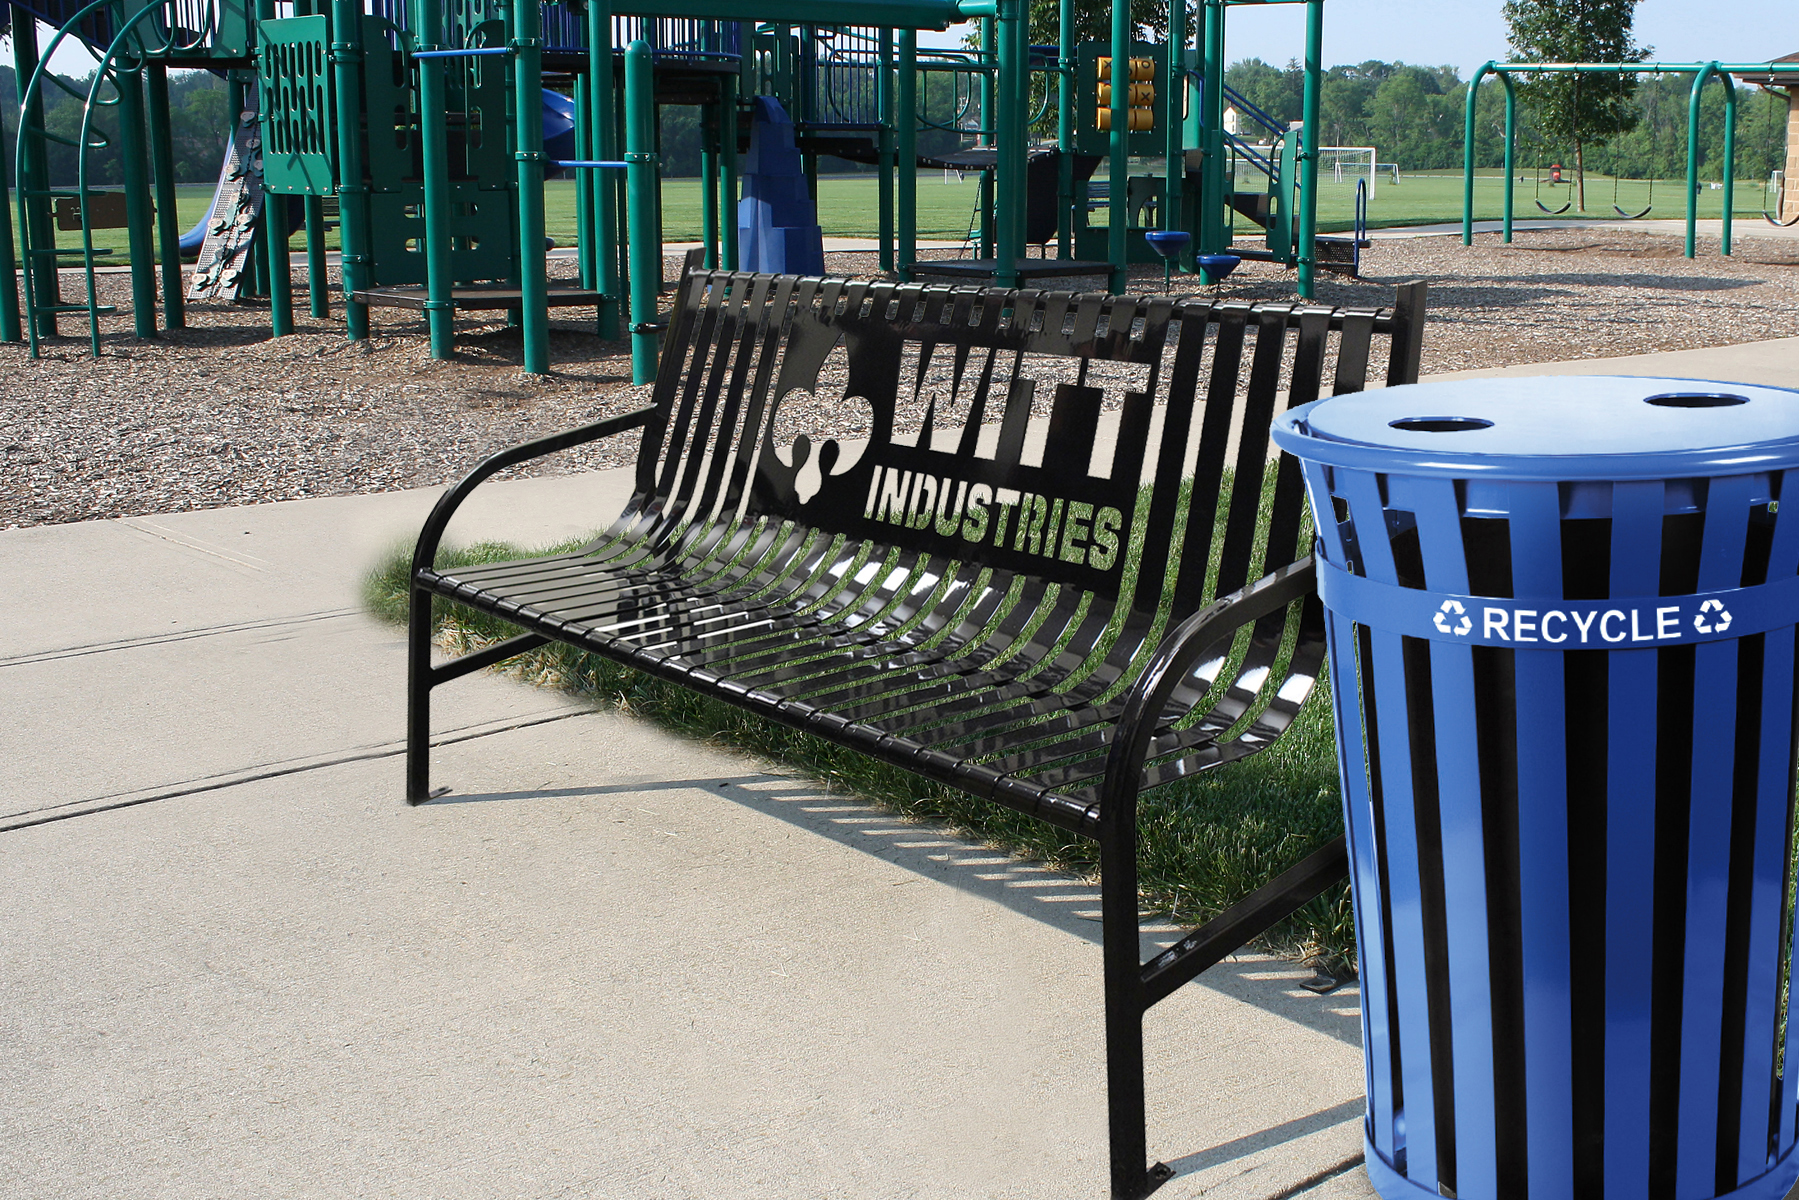 Witt Bench and Recycling Can in a Park